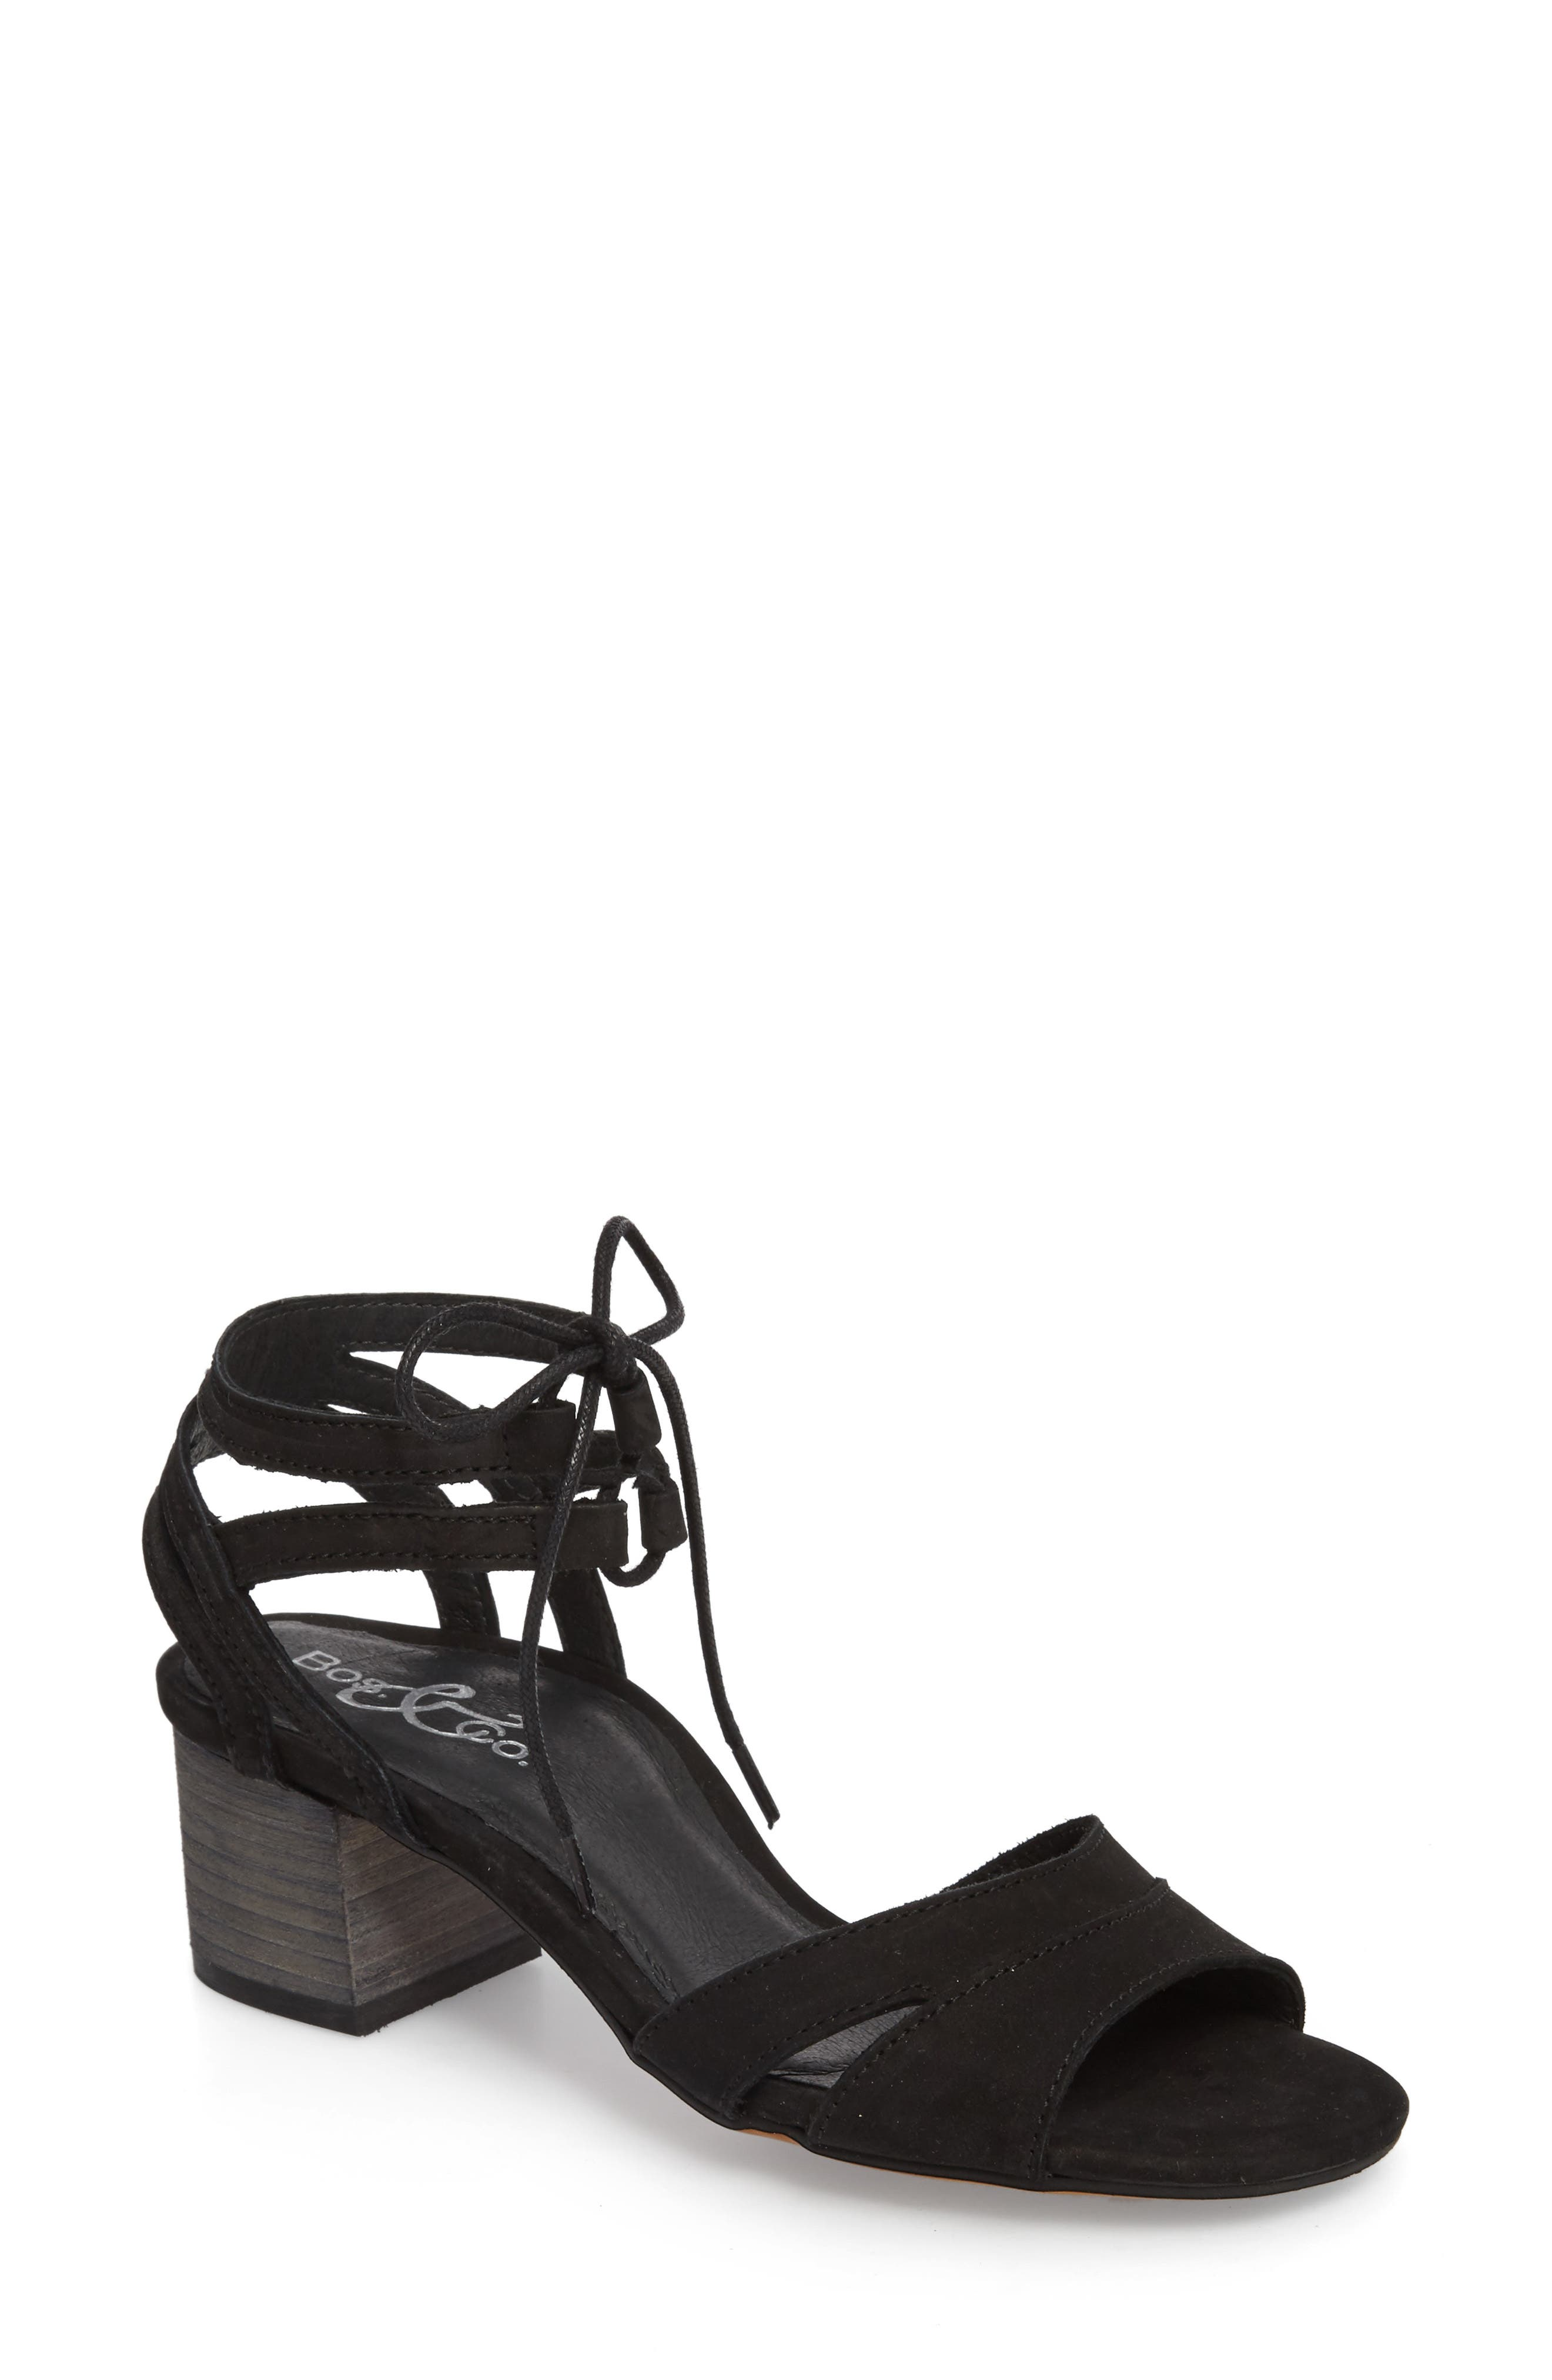 Zorita Sandal,                         Main,                         color, BLACK NUBUCK LEATHER